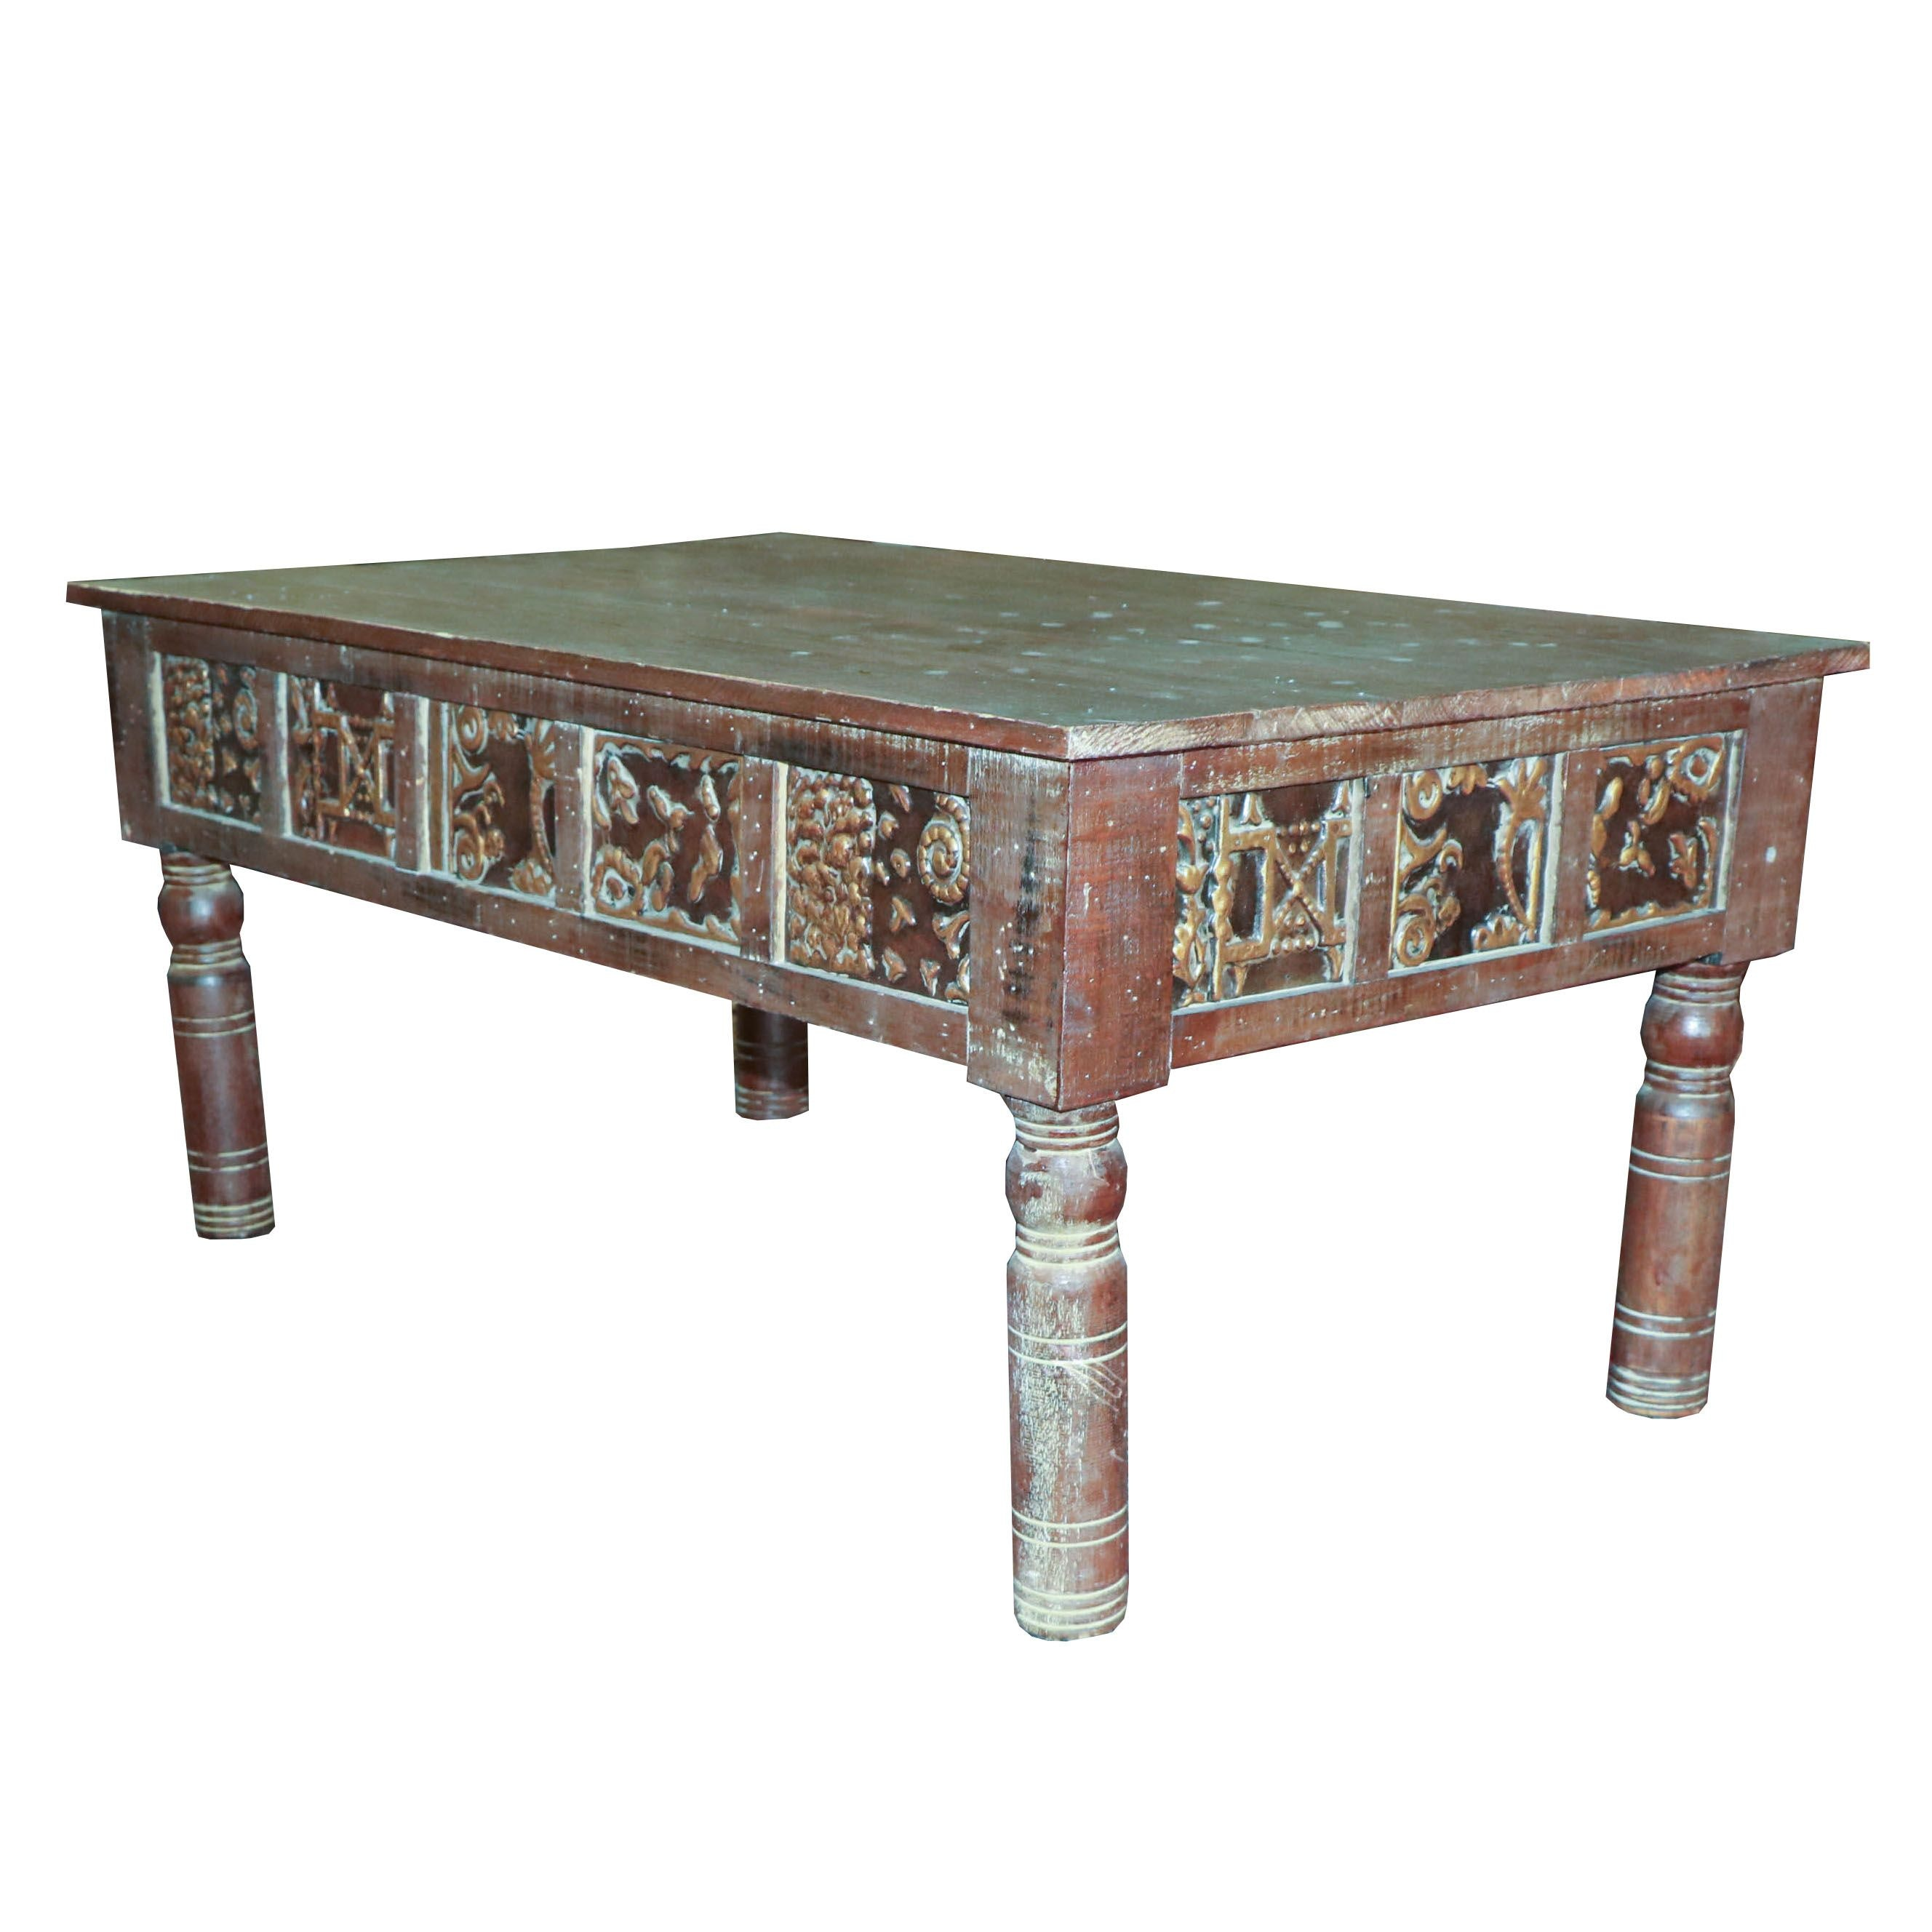 Tile and Wood Coffee Table, 20th Century